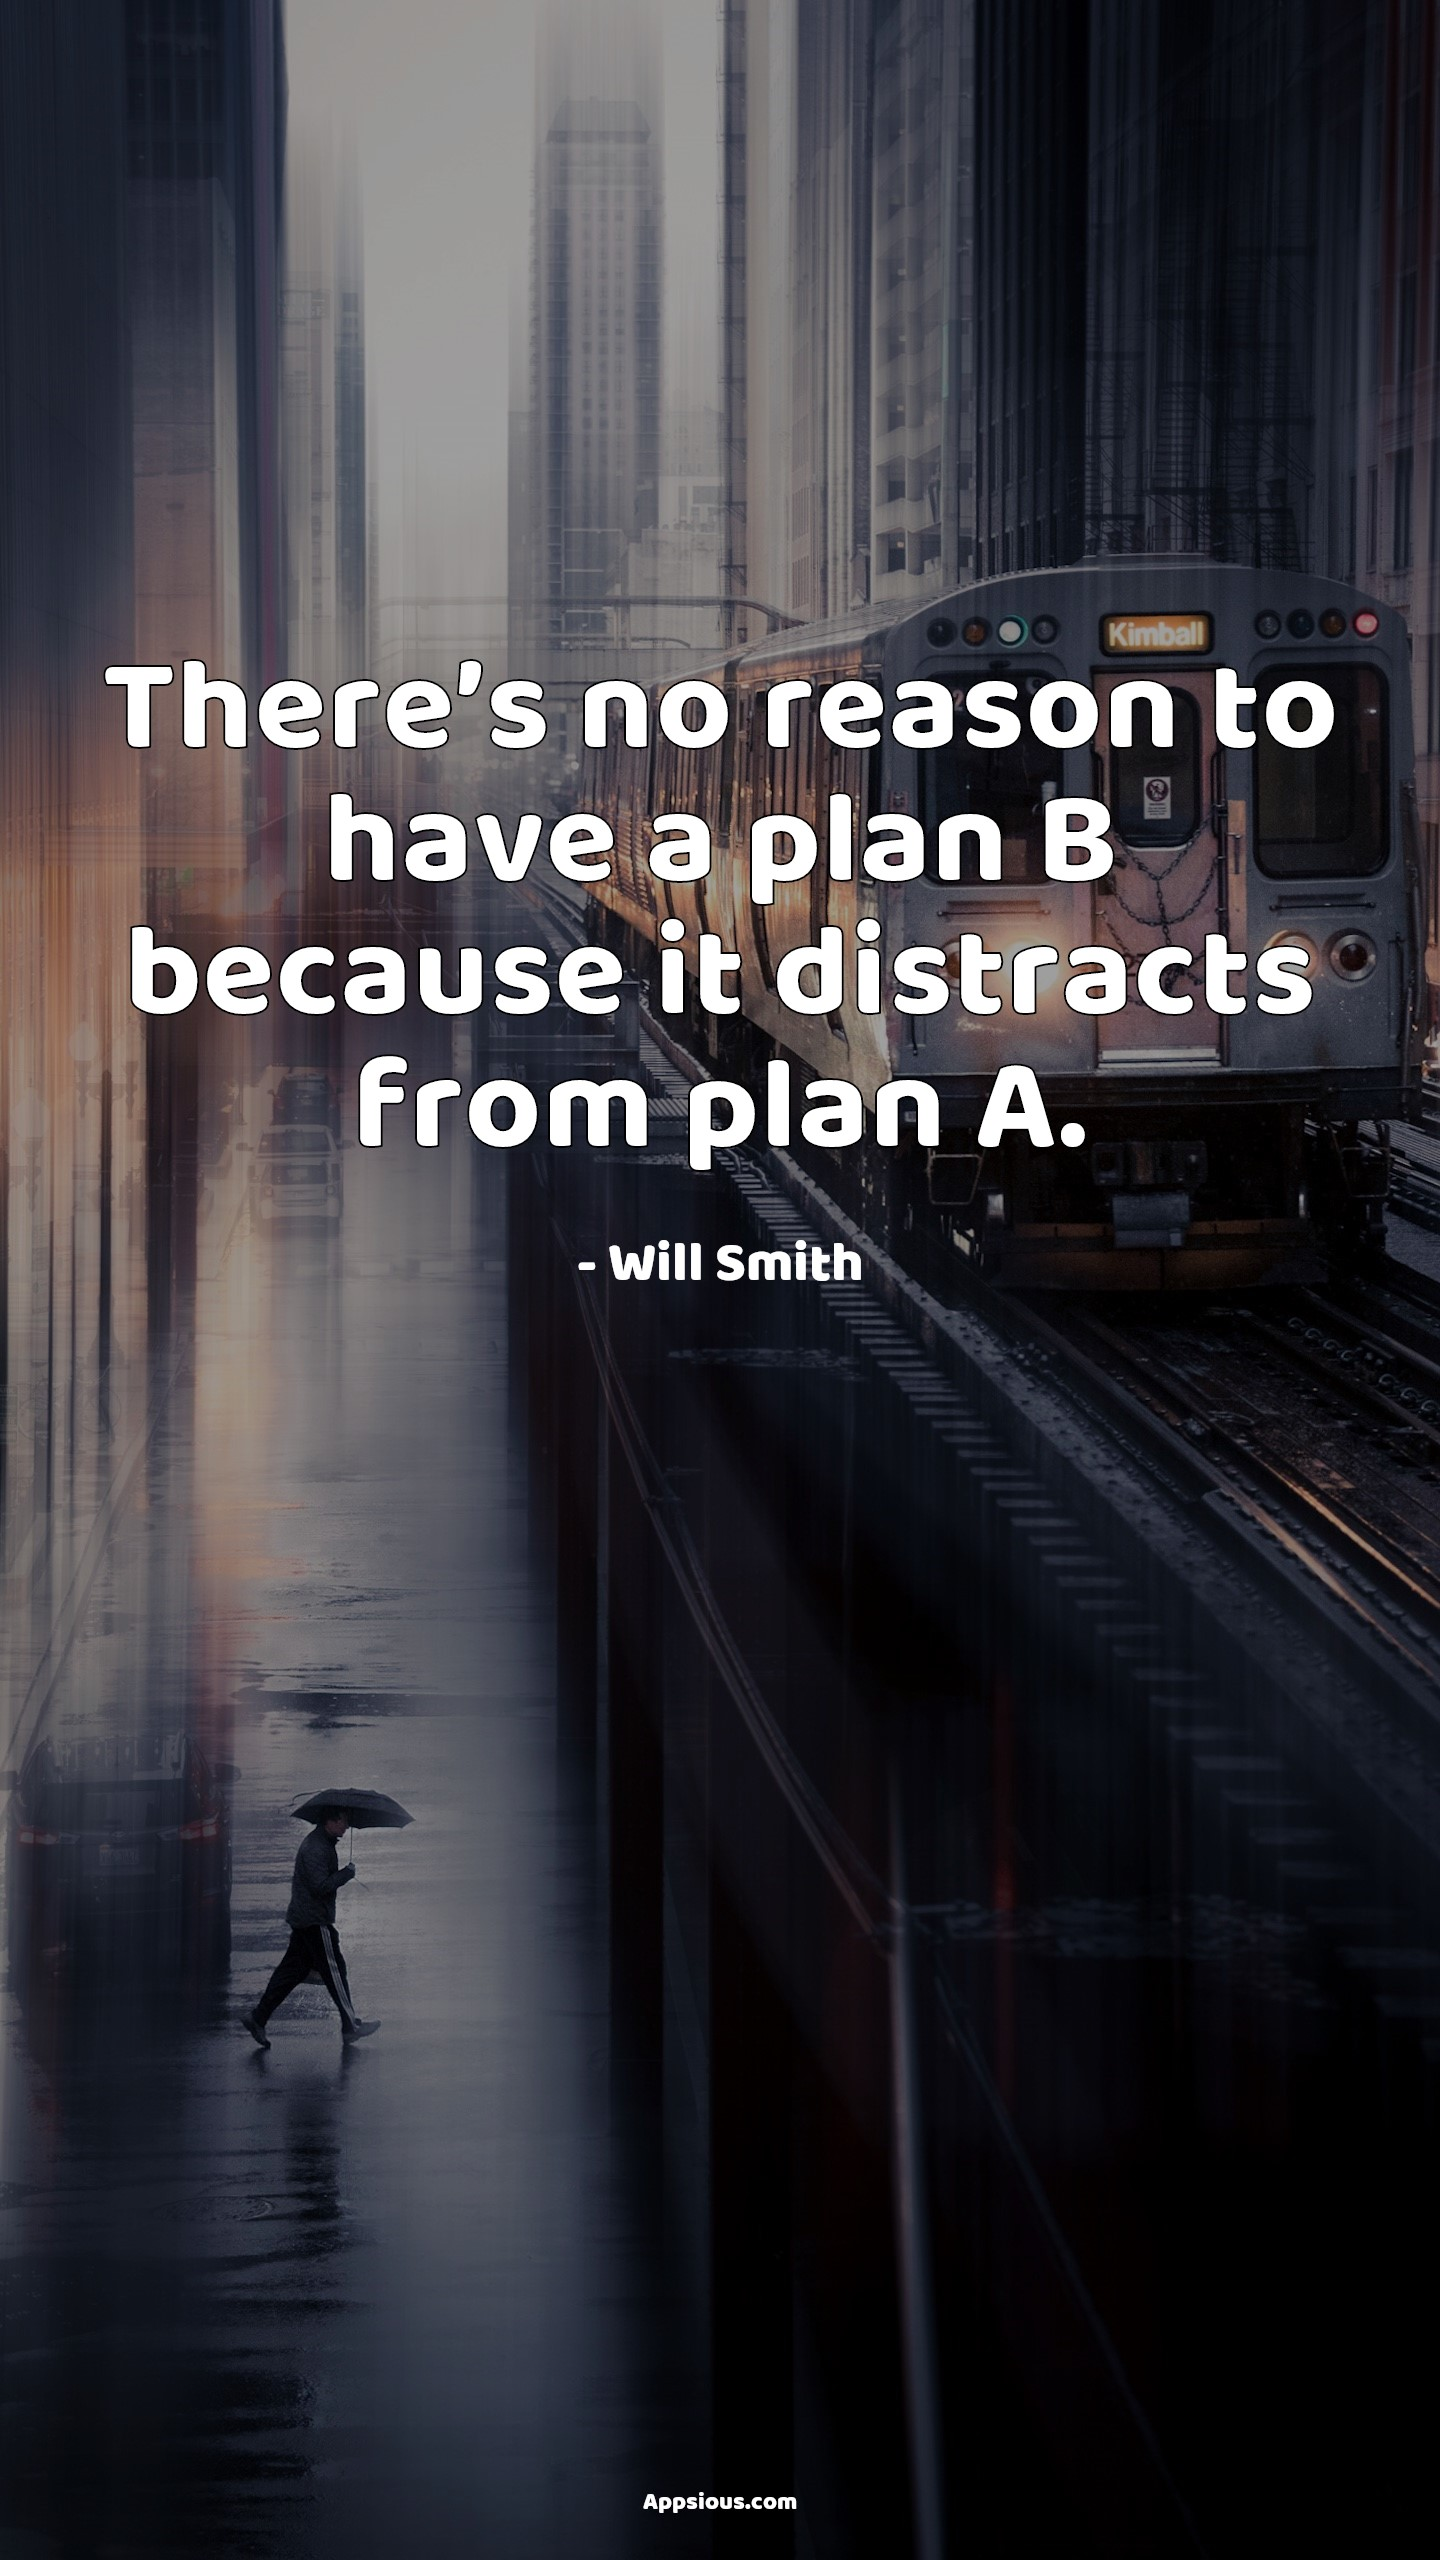 There's no reason to have a plan B because it distracts from plan A.